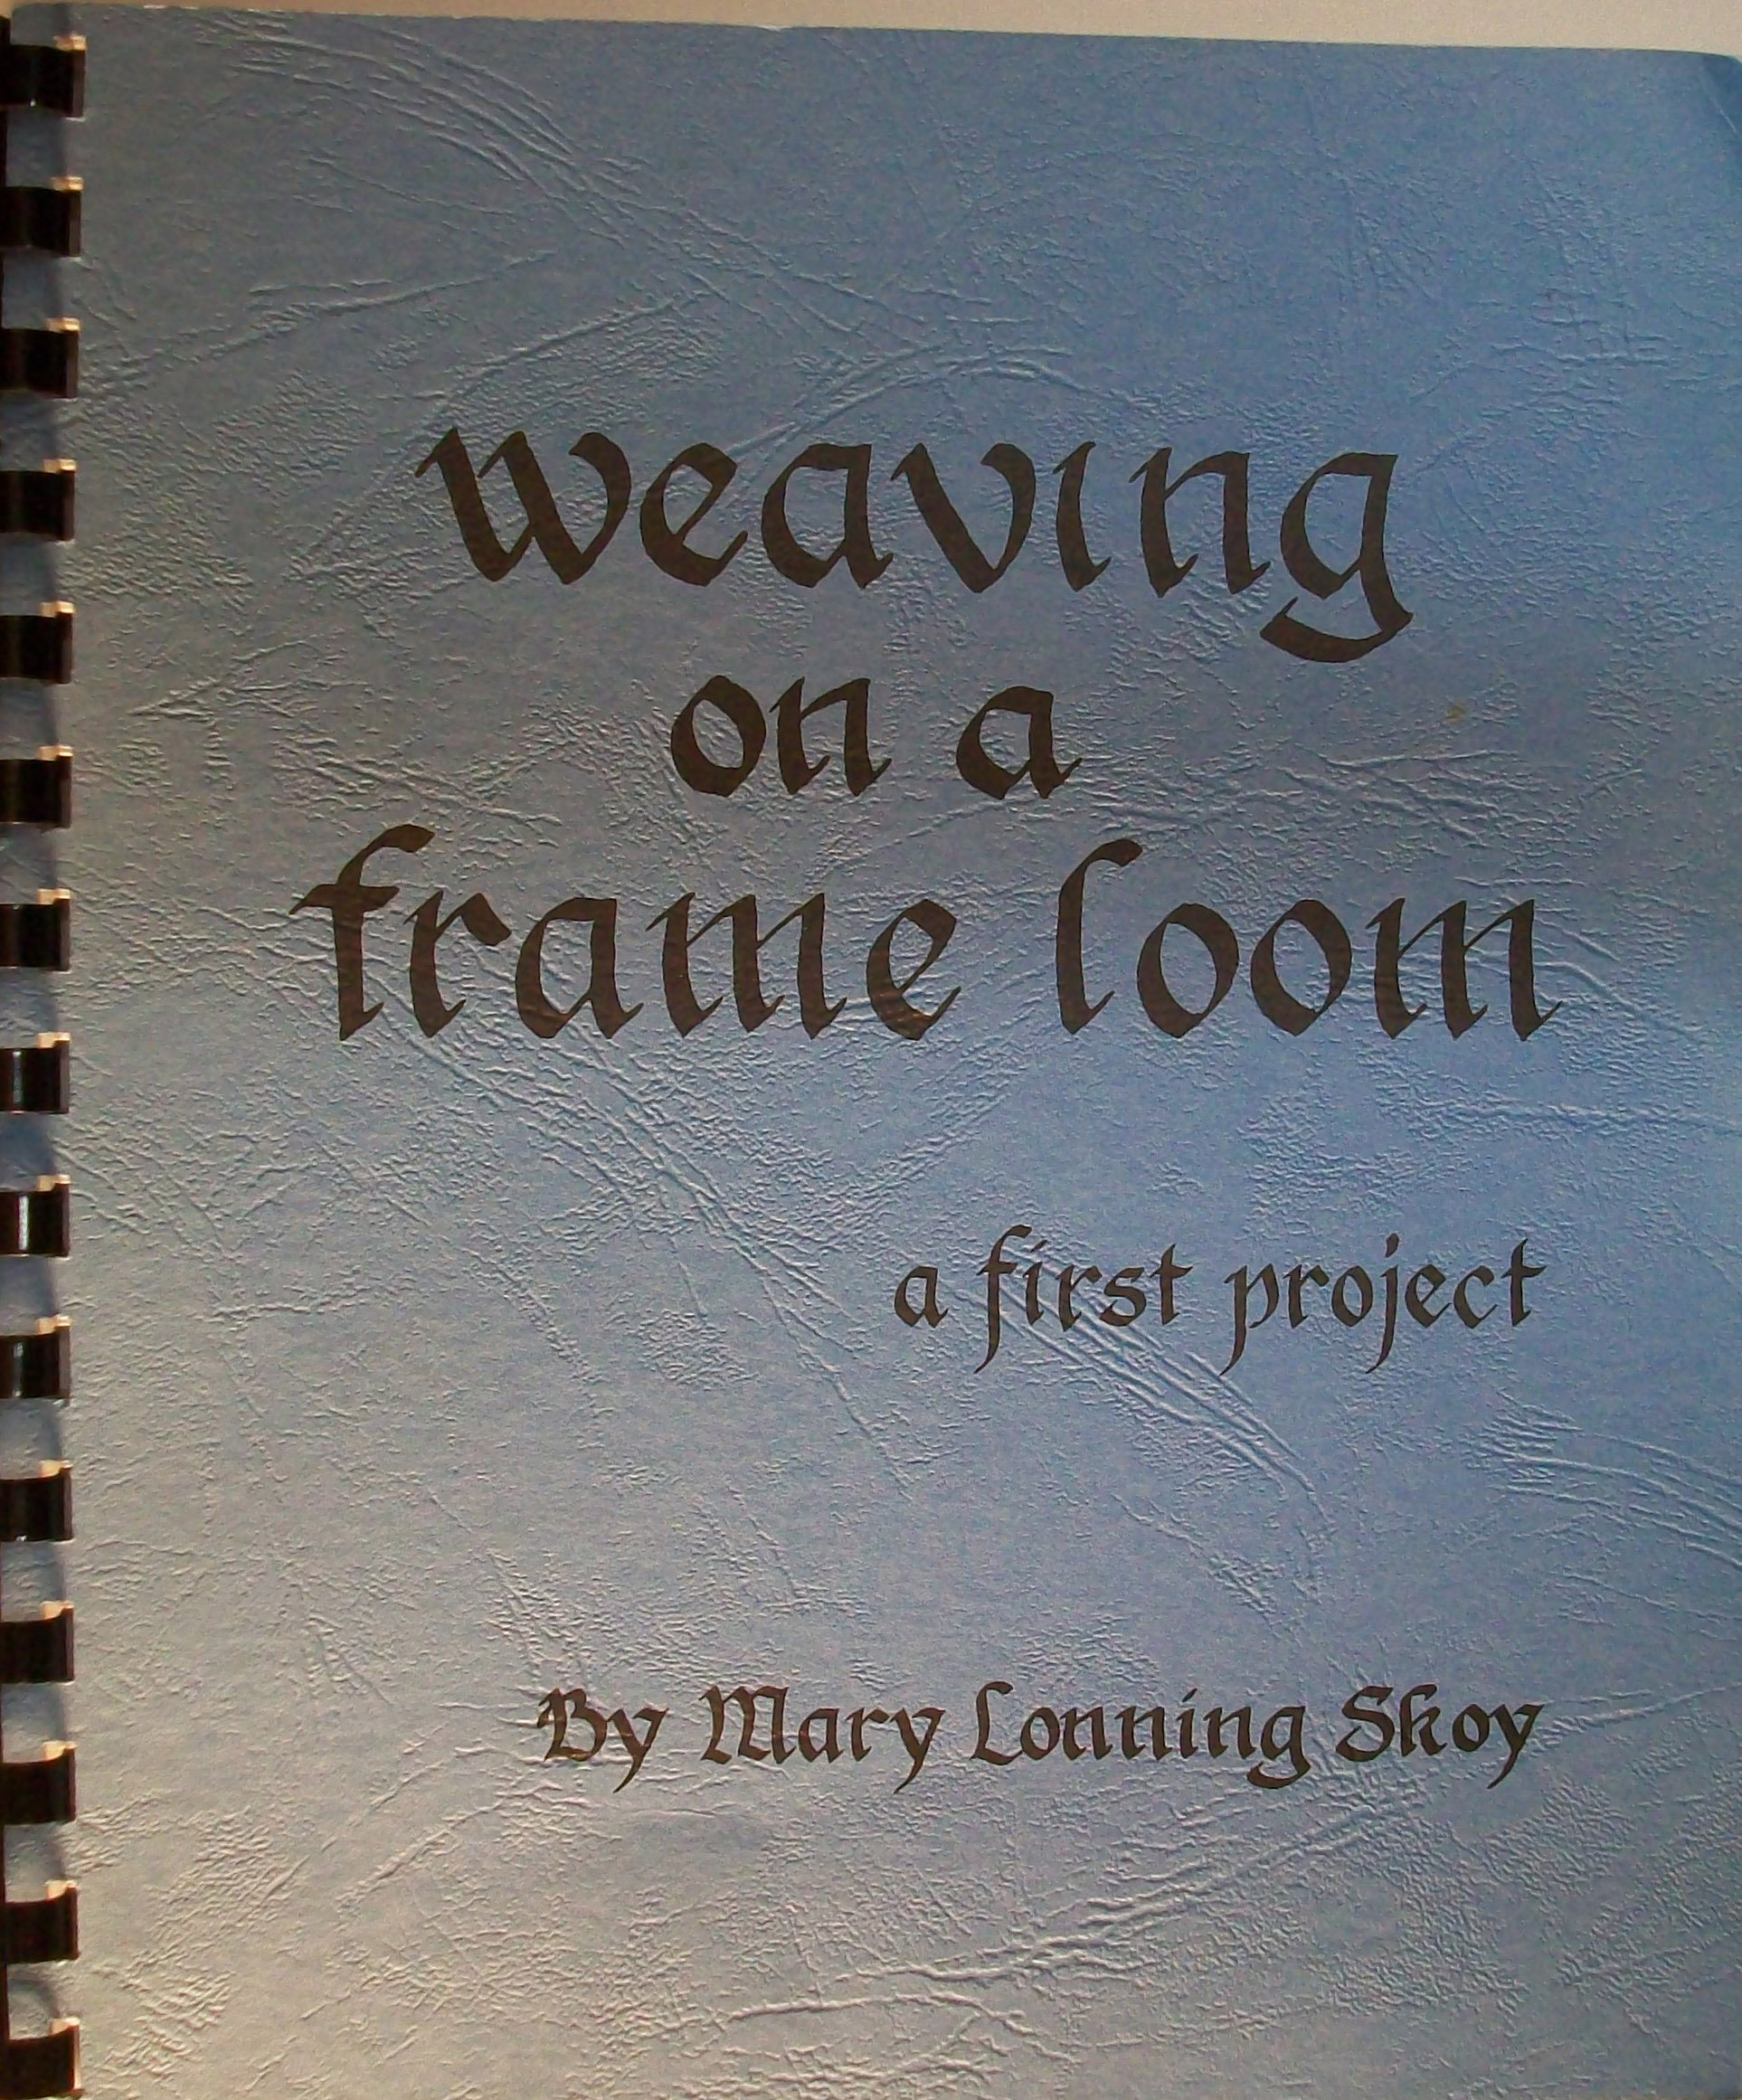 Weaving on a frame loom: A first project